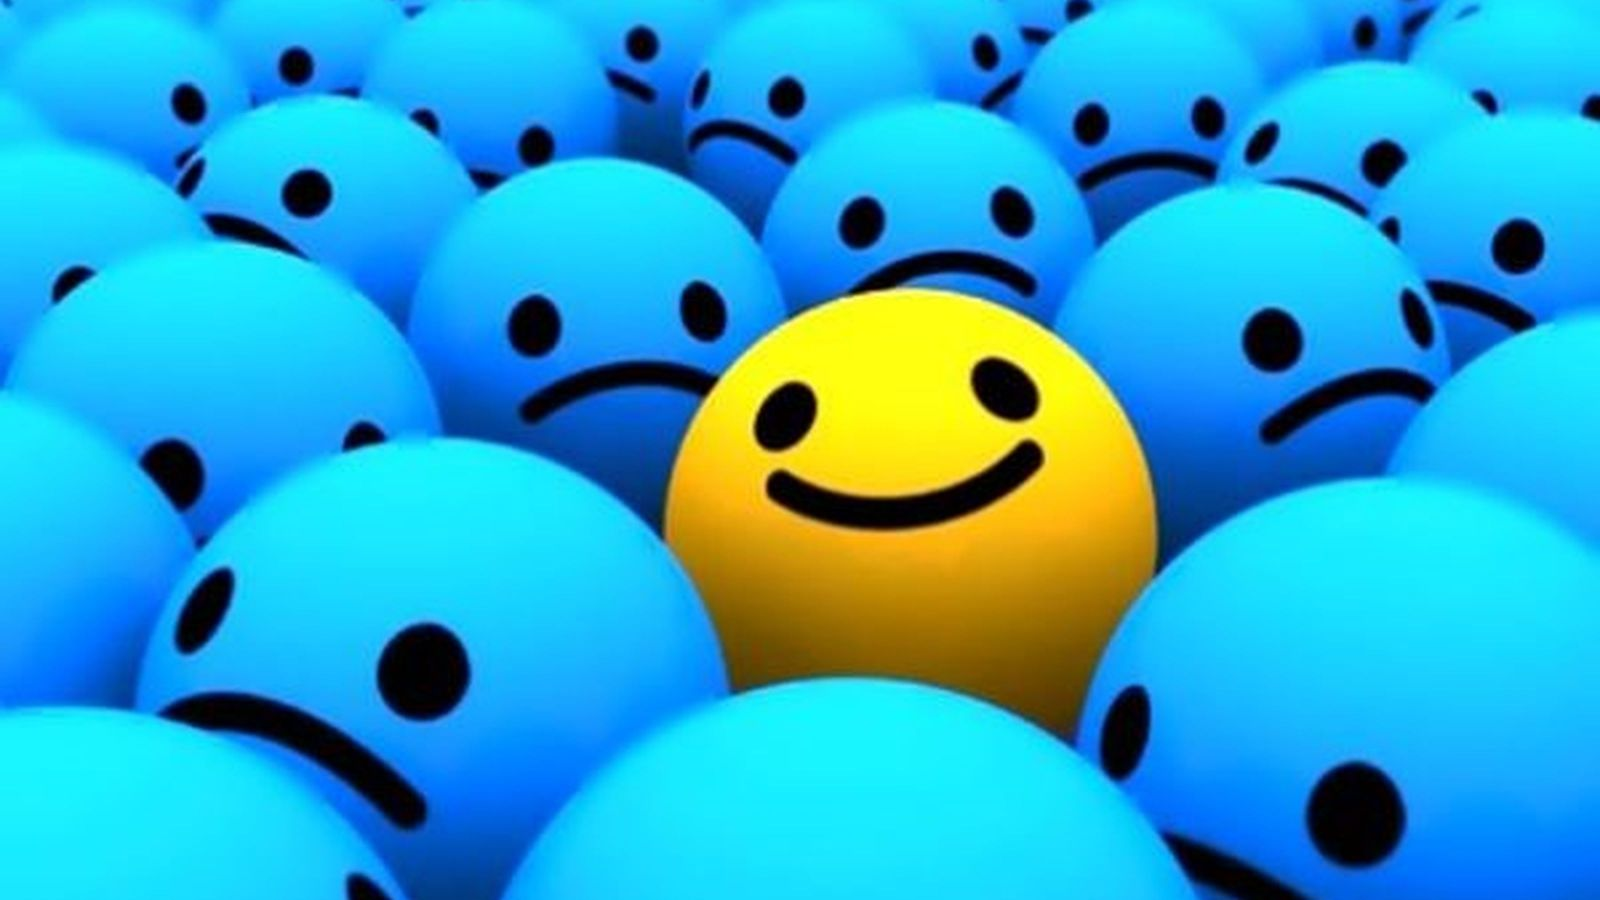 A sea of depressed blue sad faces, with one yellow happy face sitting on top